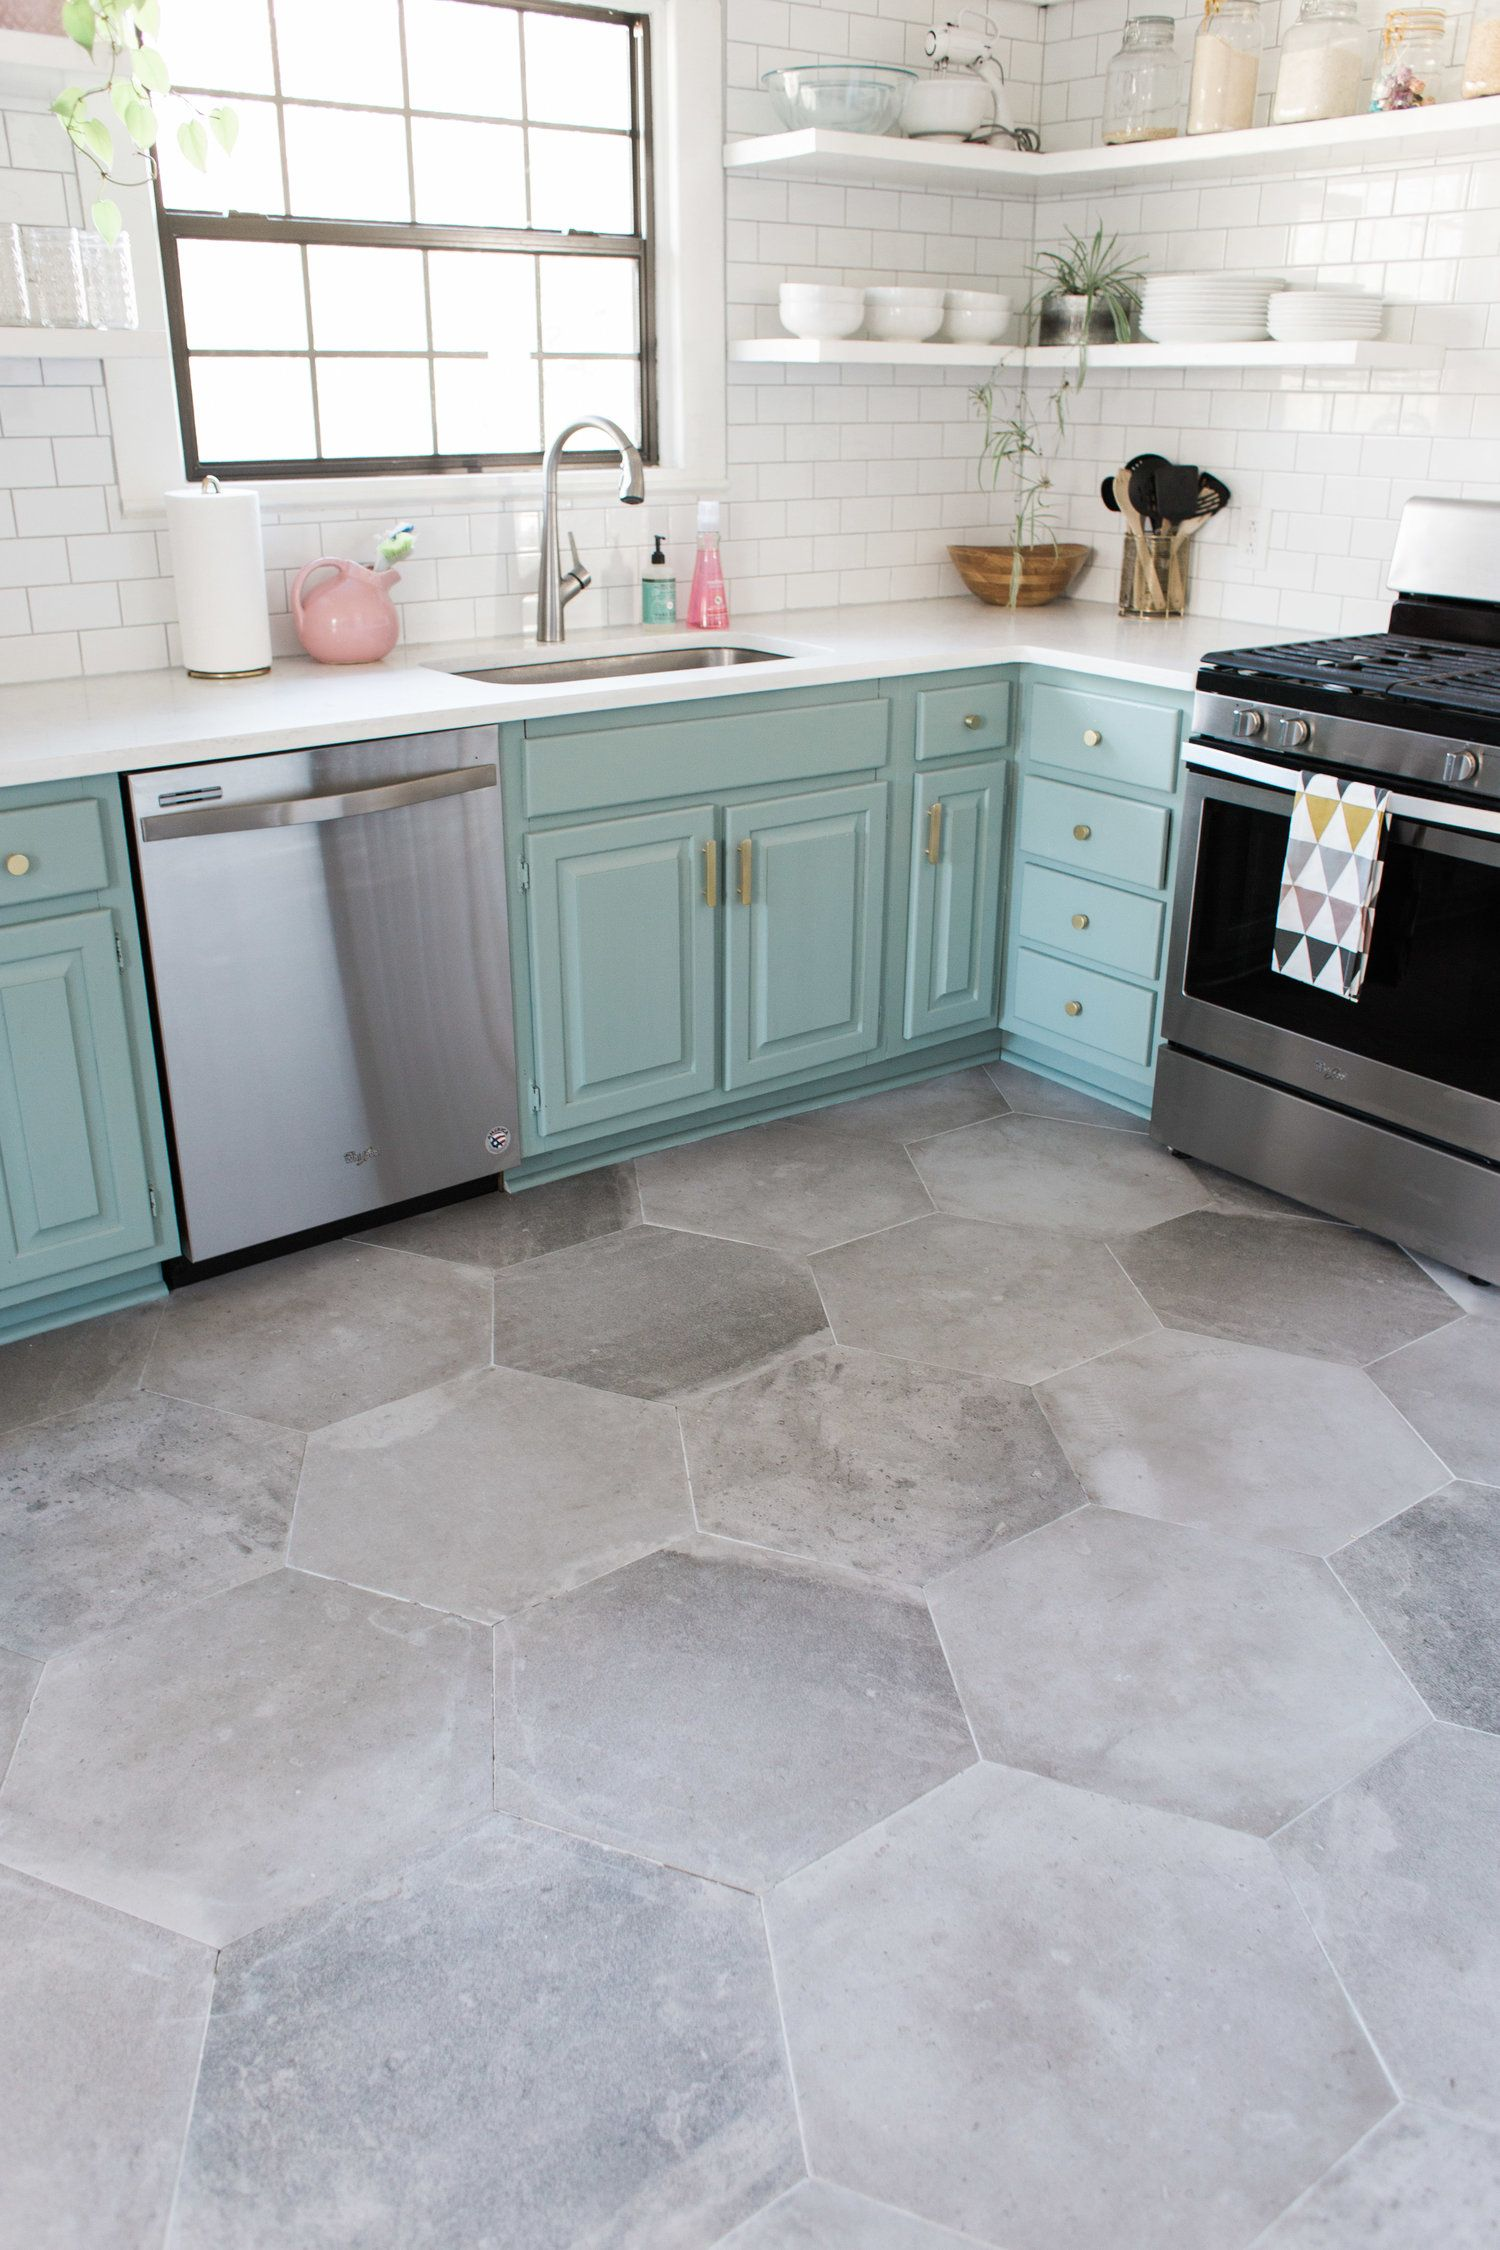 Cottage Supply Co does awesome work!   tile   Pinterest   Kitchens ...